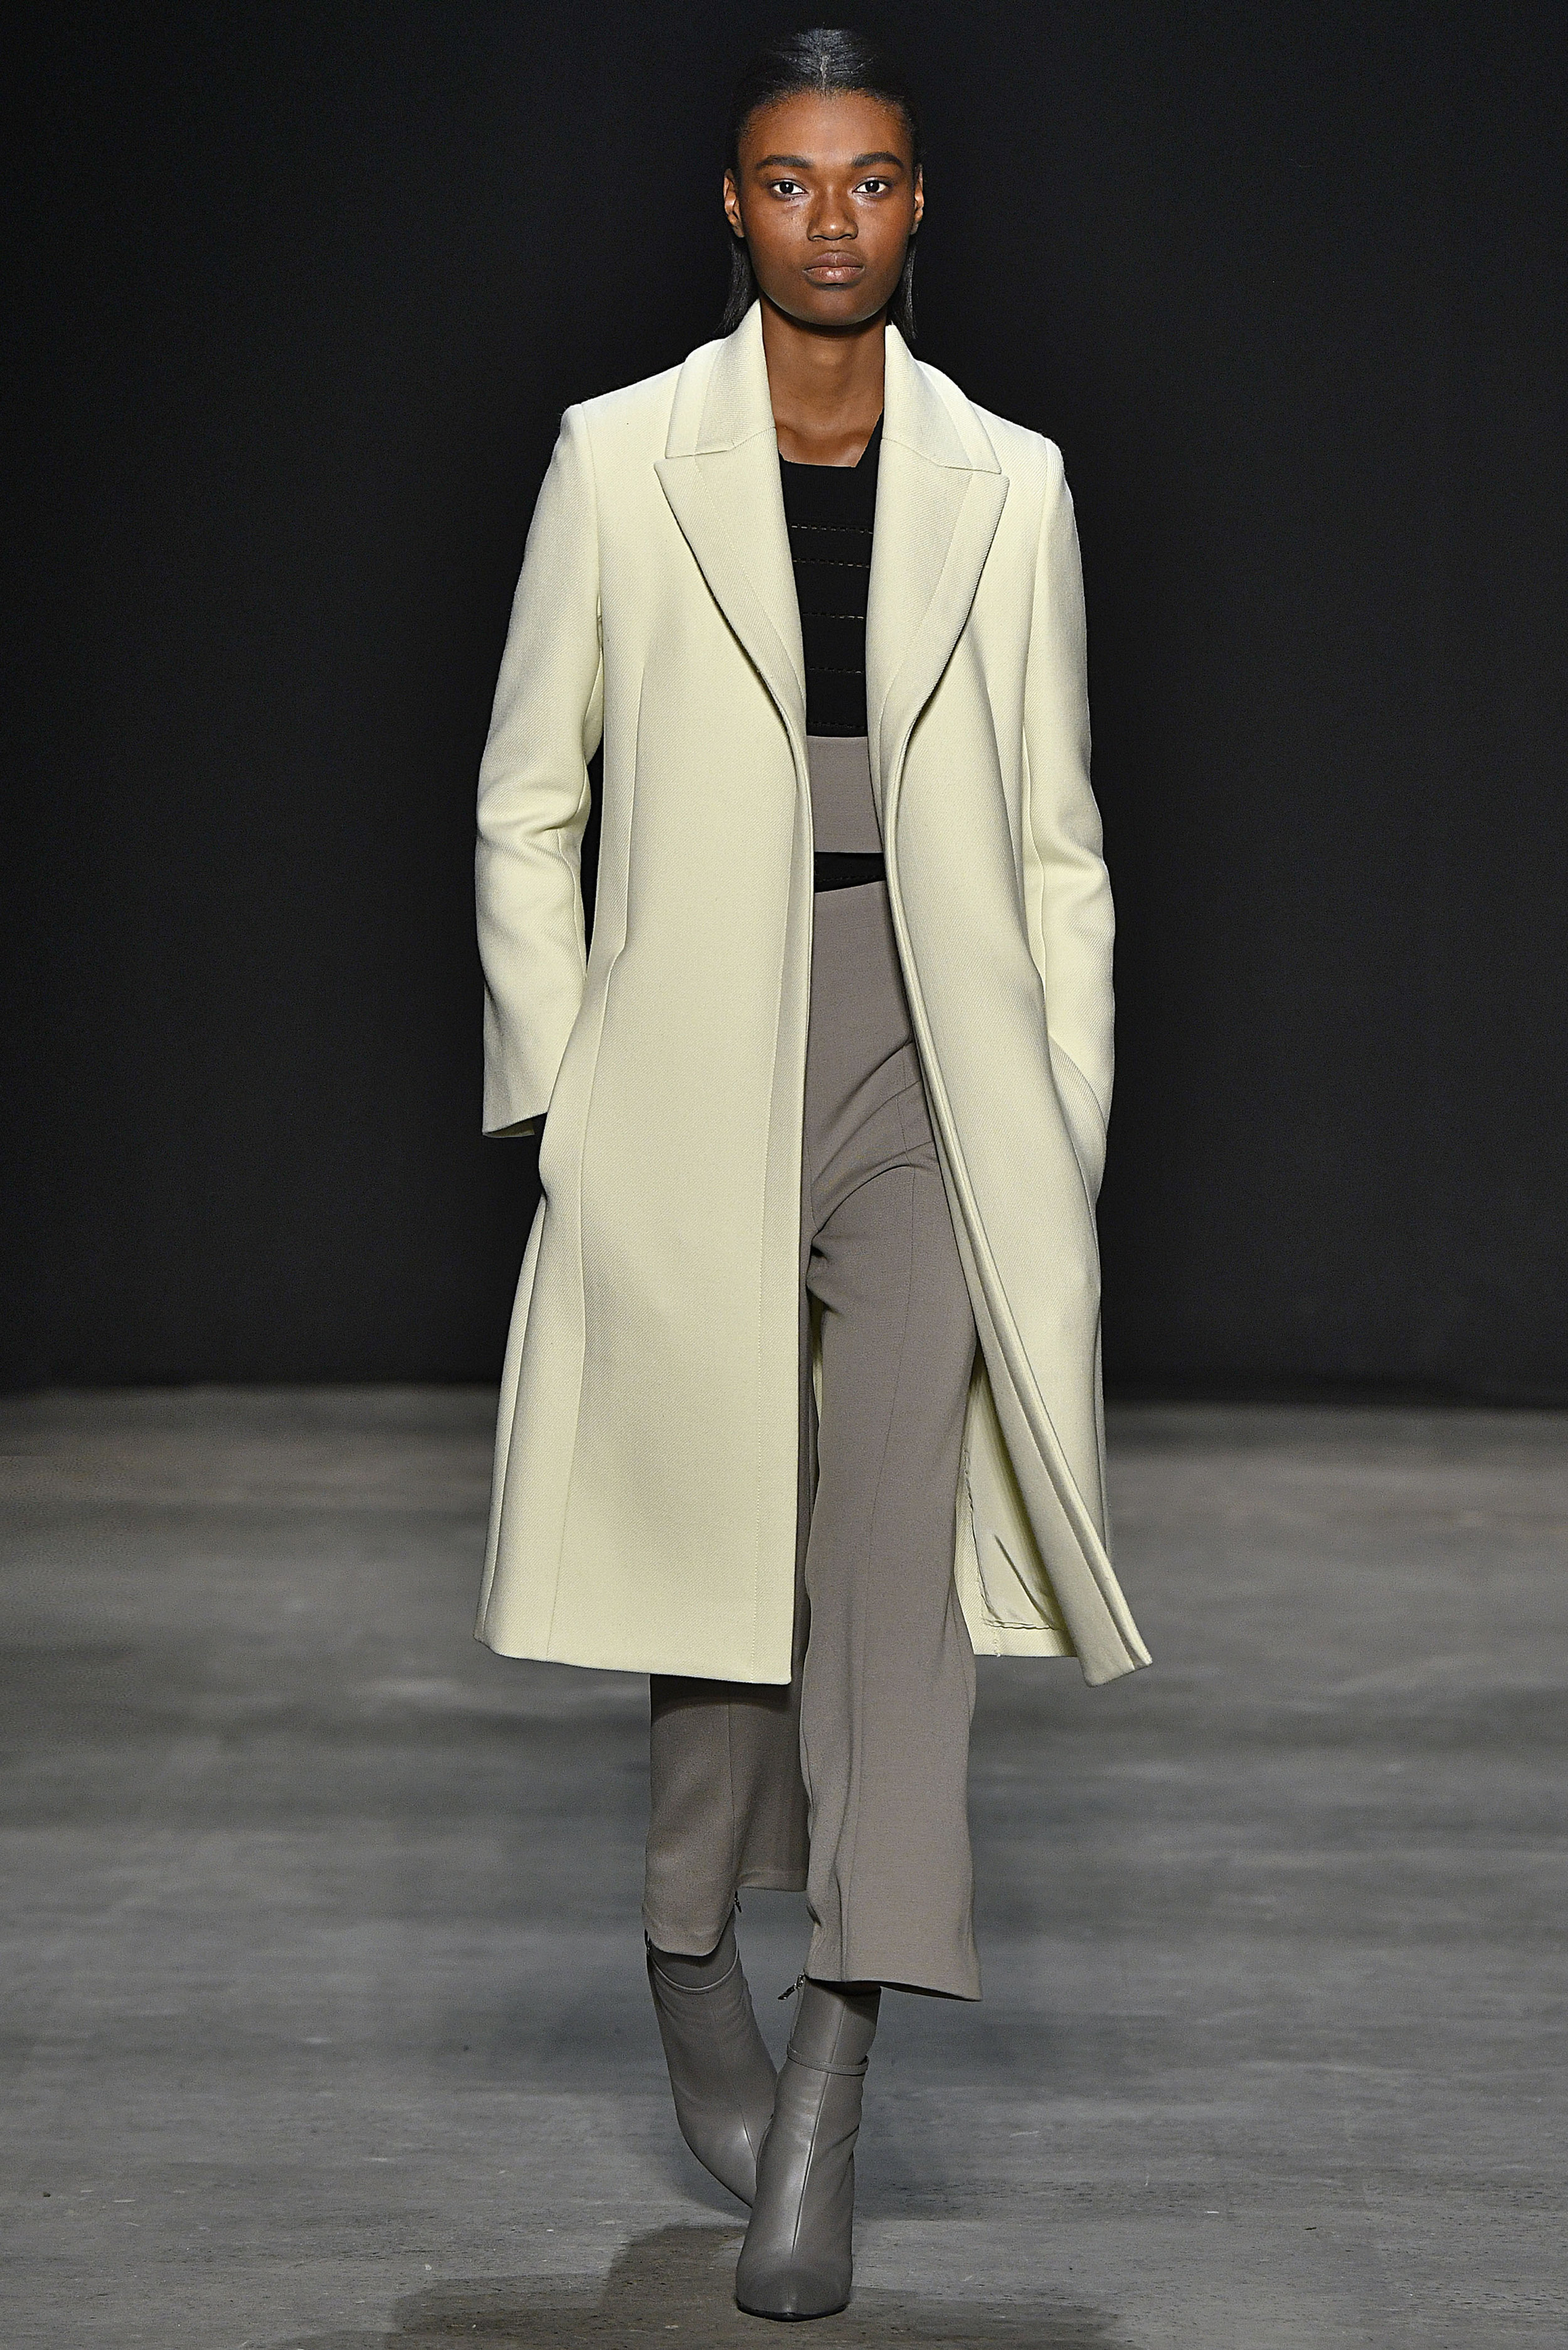 Narciso Rodriguez Fall 2017 collection. Pale yellow wool twill tab coat over black knit top with khaki wool barathea pant.